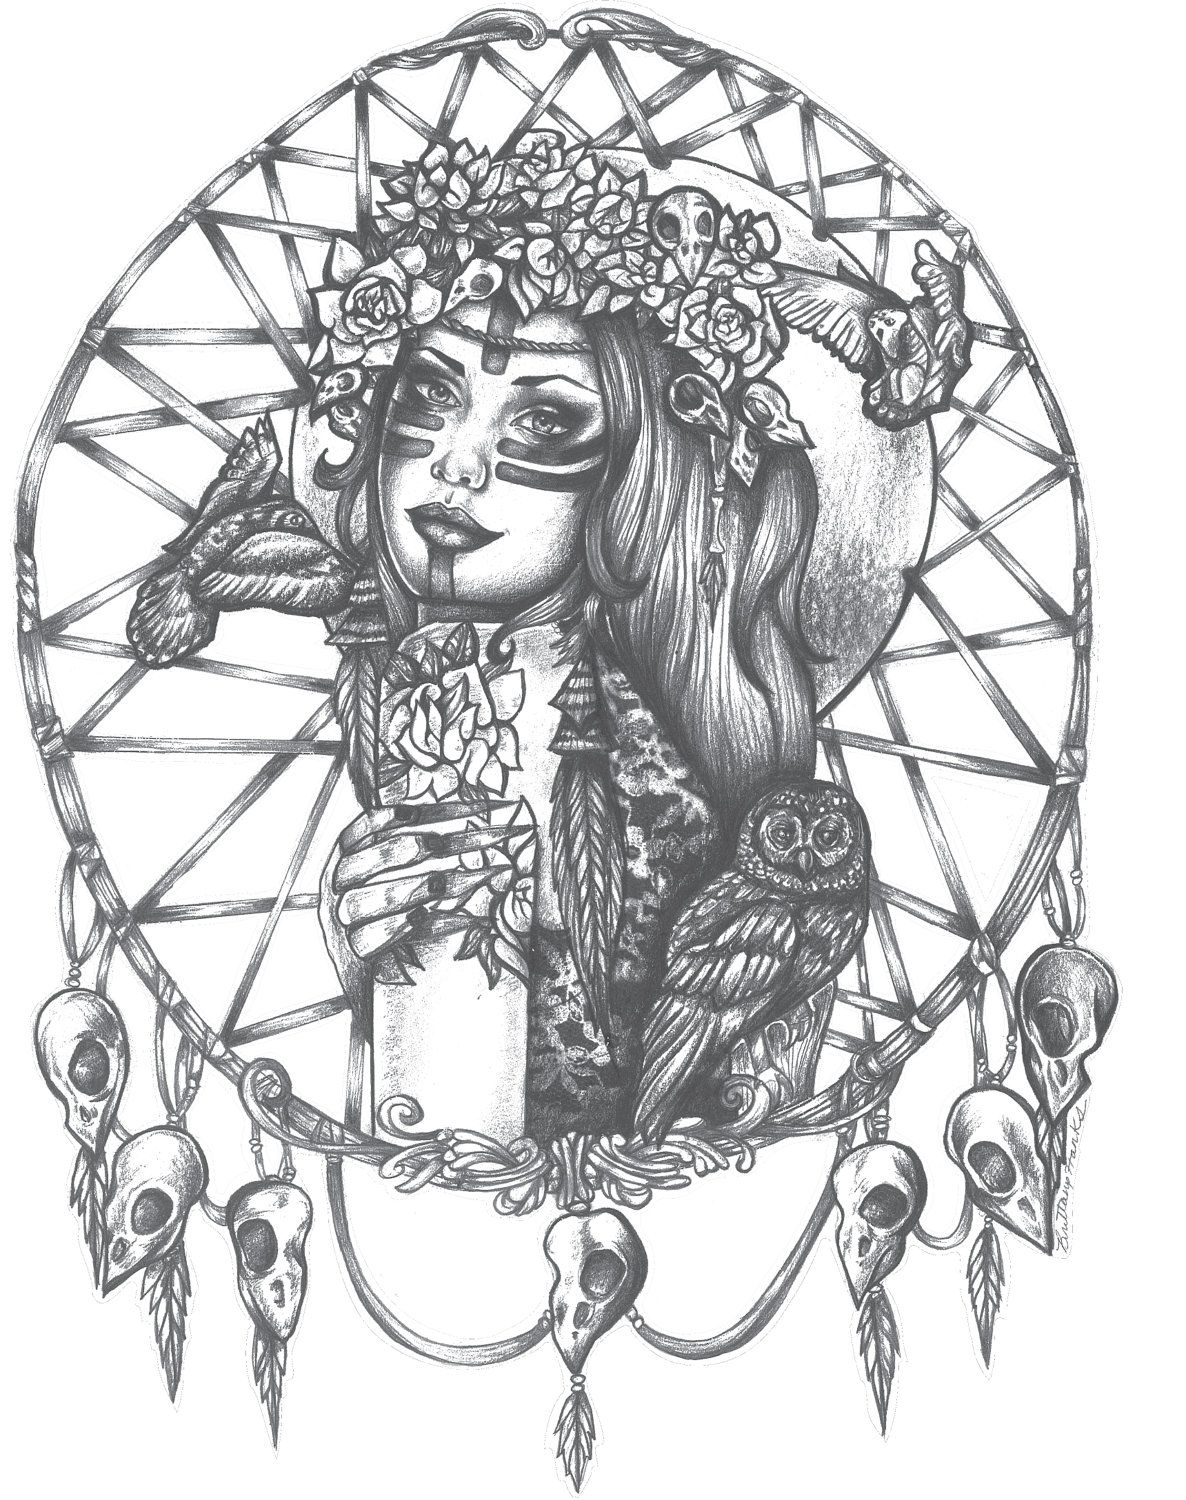 58f49b6b5 Listing - Native American Indian Girl In Skull Dreamcatcher drawing Print  bird skulls tattoo art 5 by 7 black and white This design is one that I did  in ...